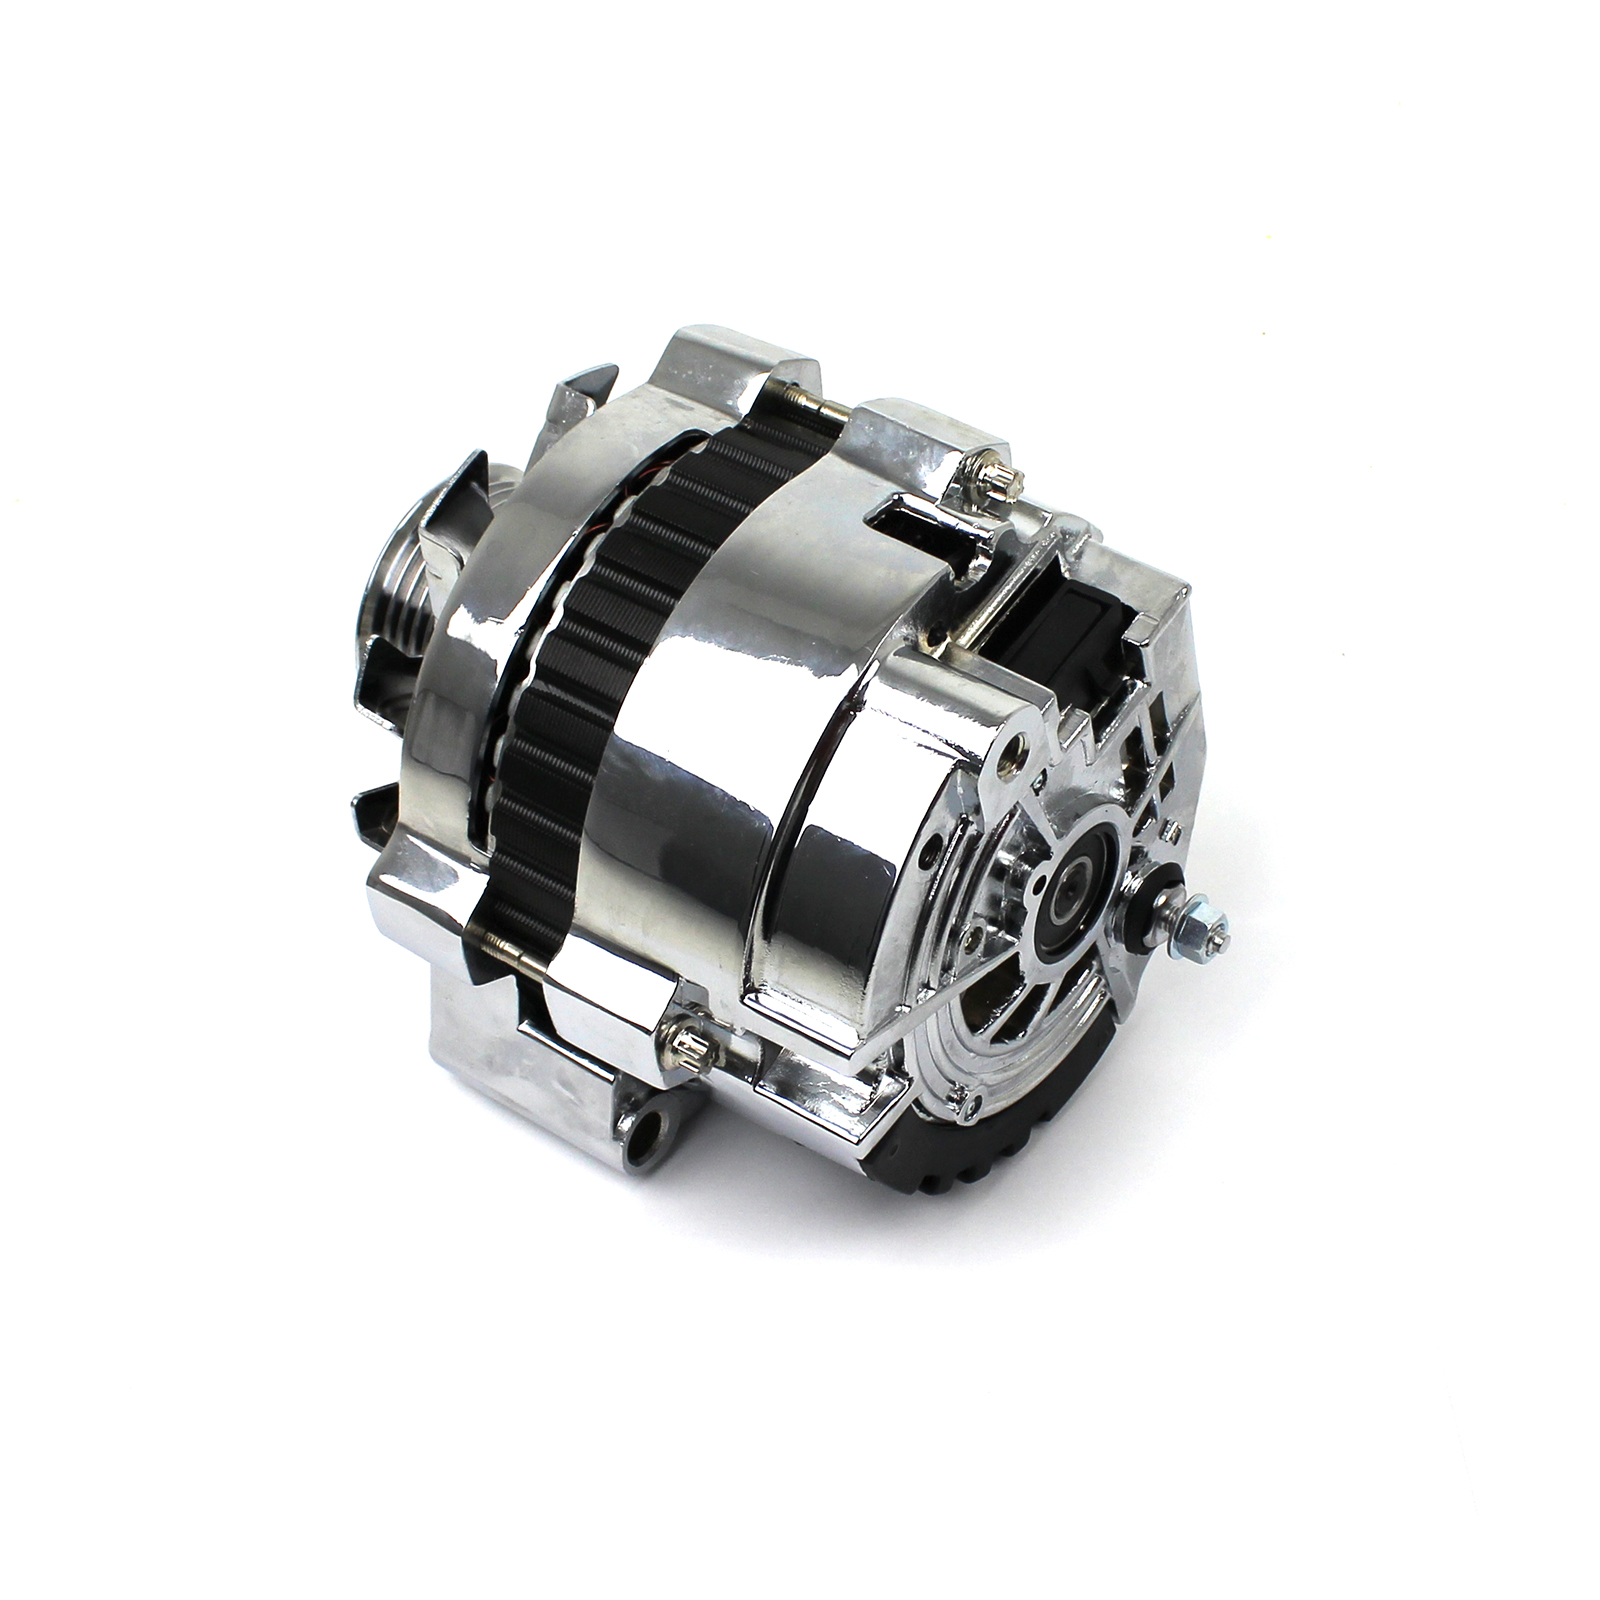 Chevy Gm Left Mount Serpentine 130 Amp High Output Chrome